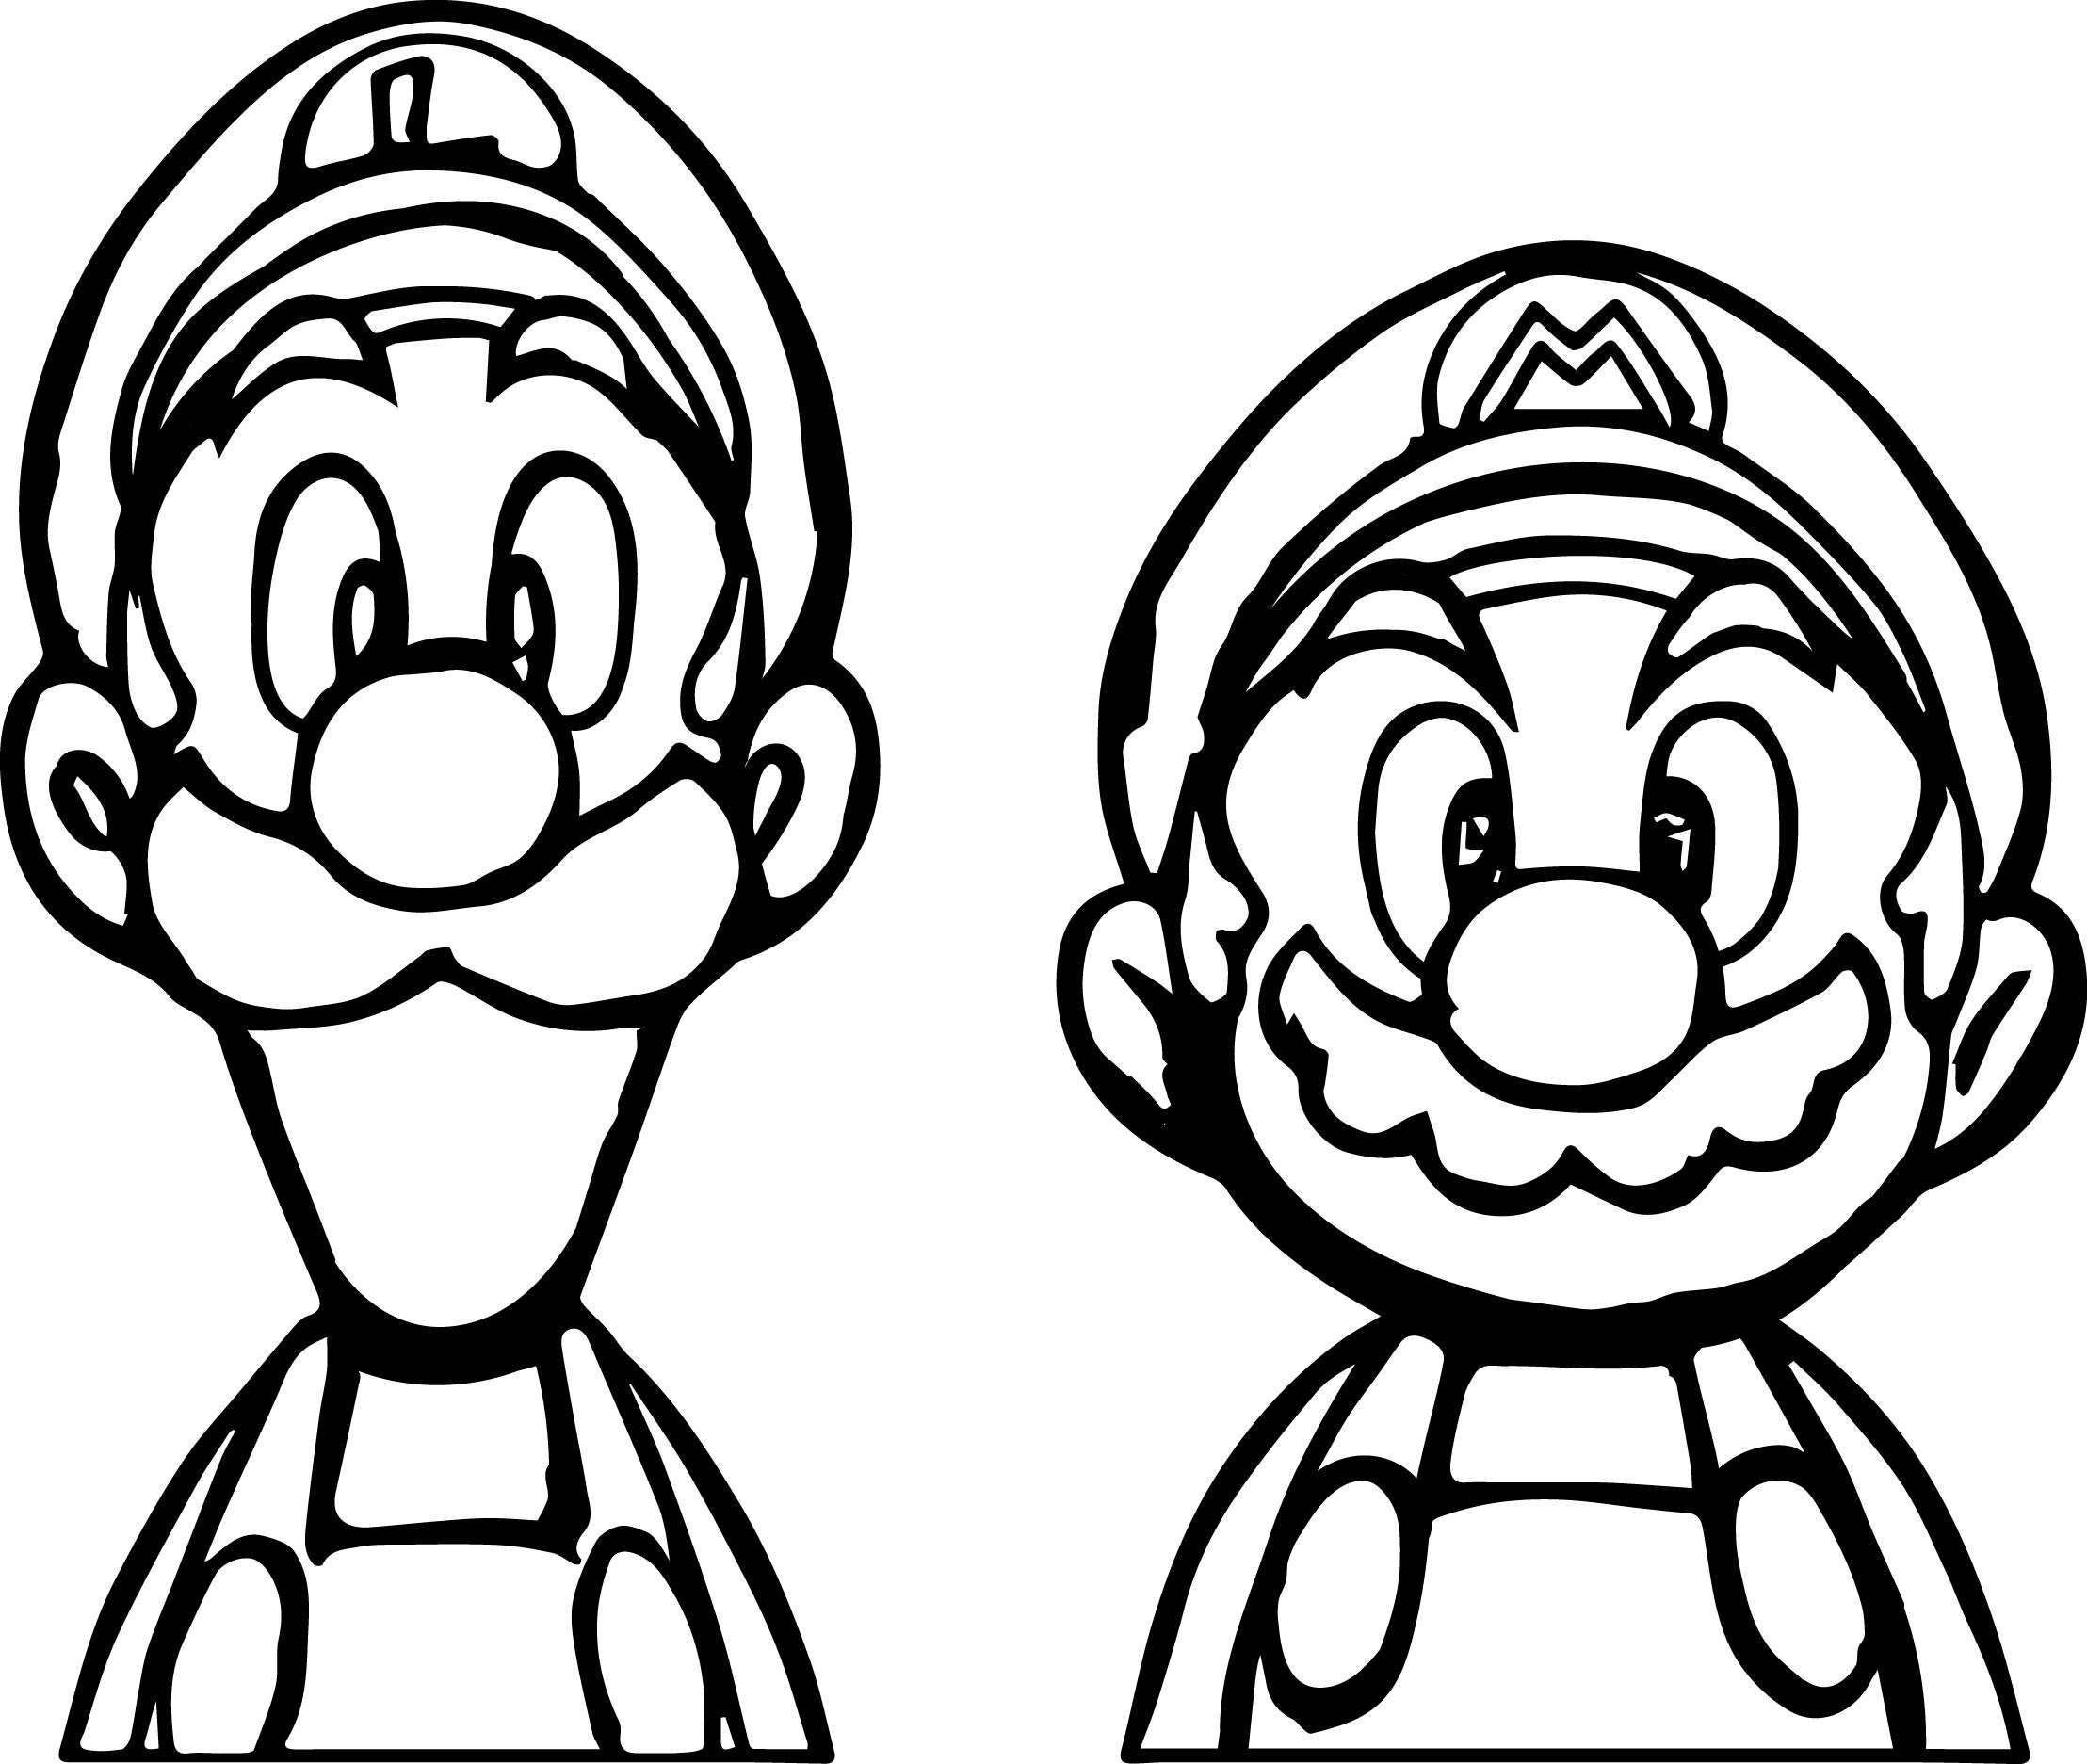 Super Mario Coloring Pages Fresh Super Mario Coloring Page Luxury S Mario Luigi Colori Mario Coloring Pages Super Mario Coloring Pages Halloween Coloring Pages